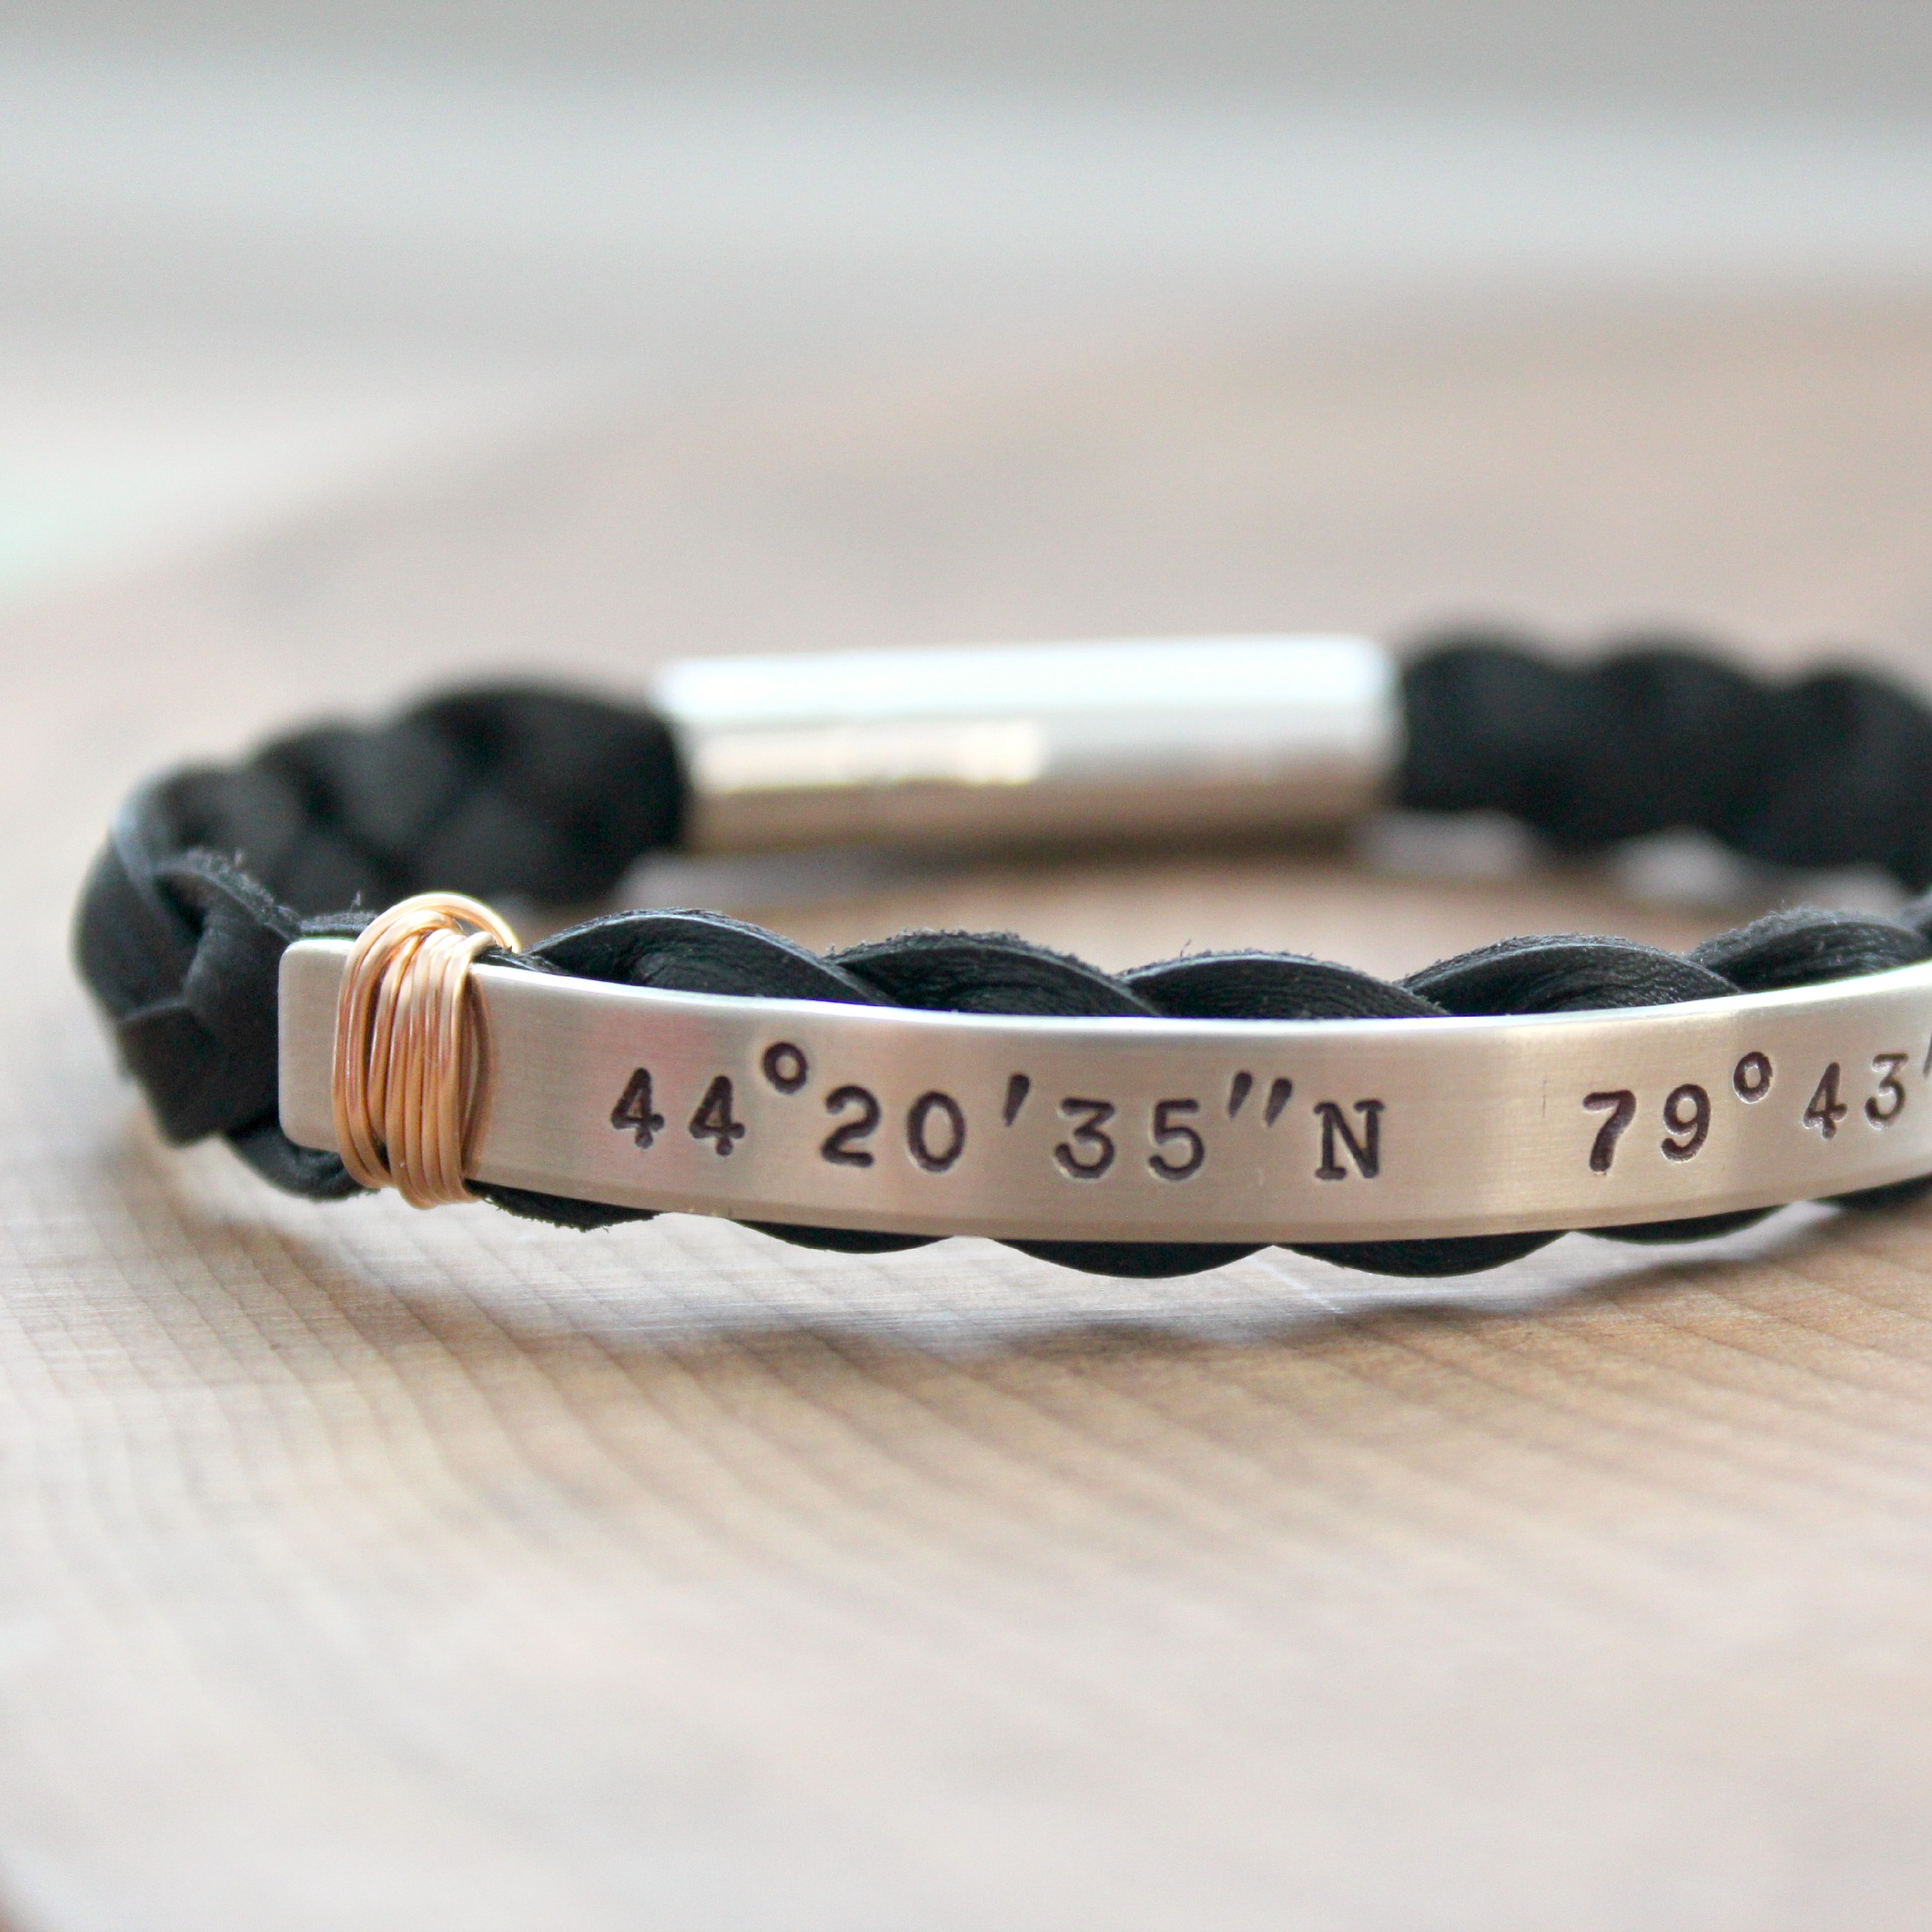 bracelet men drake coordinates or gps products women jewelry for longitude latitude designs